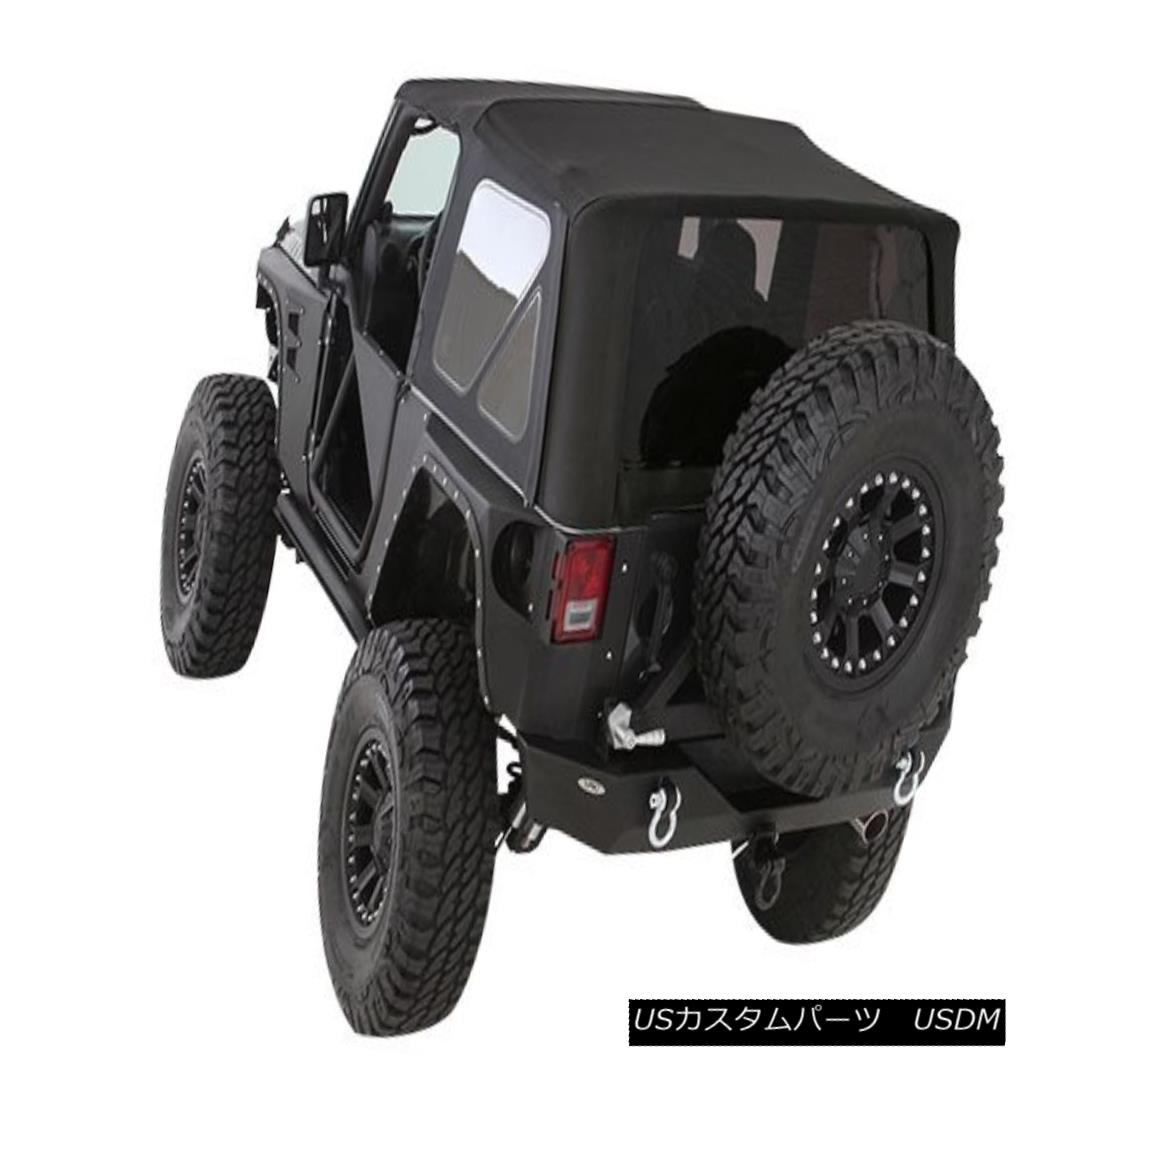 幌・ソフトトップ 2010-2017 Jeep Wrangler 2 Dr Premium Twill Replacement Soft Top & Tinted Windows 2010-2017ジープラングラー2 Dr Premium Twill Replacementソフトトップ& 色づけされたウィンドウ